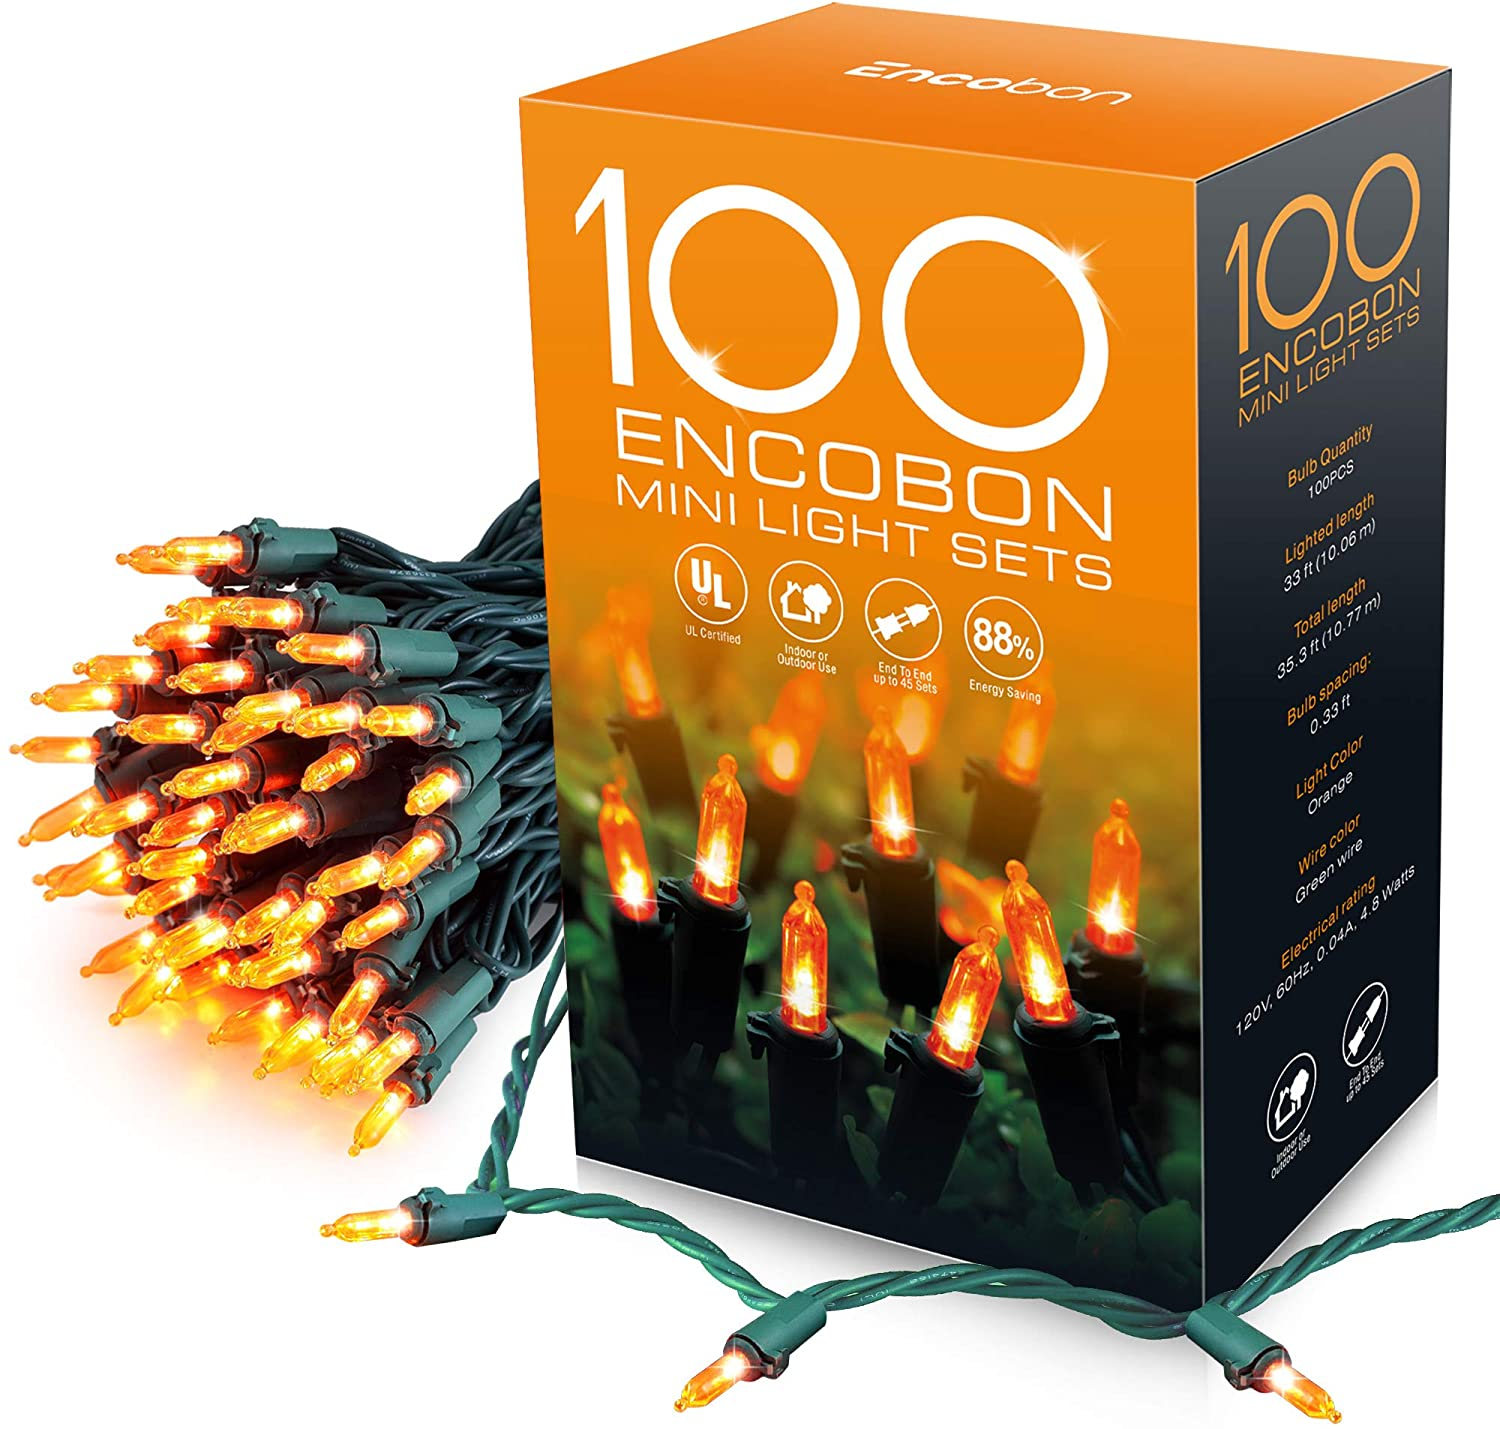 Encobon Orange Christmas Lights,33ft 100 LED String Lights, 120V UL Certified Xmas Tree Lights for Christmas, Halloween, Patio, Holiday, Party, Home, Indoor and Outdoor Decoration